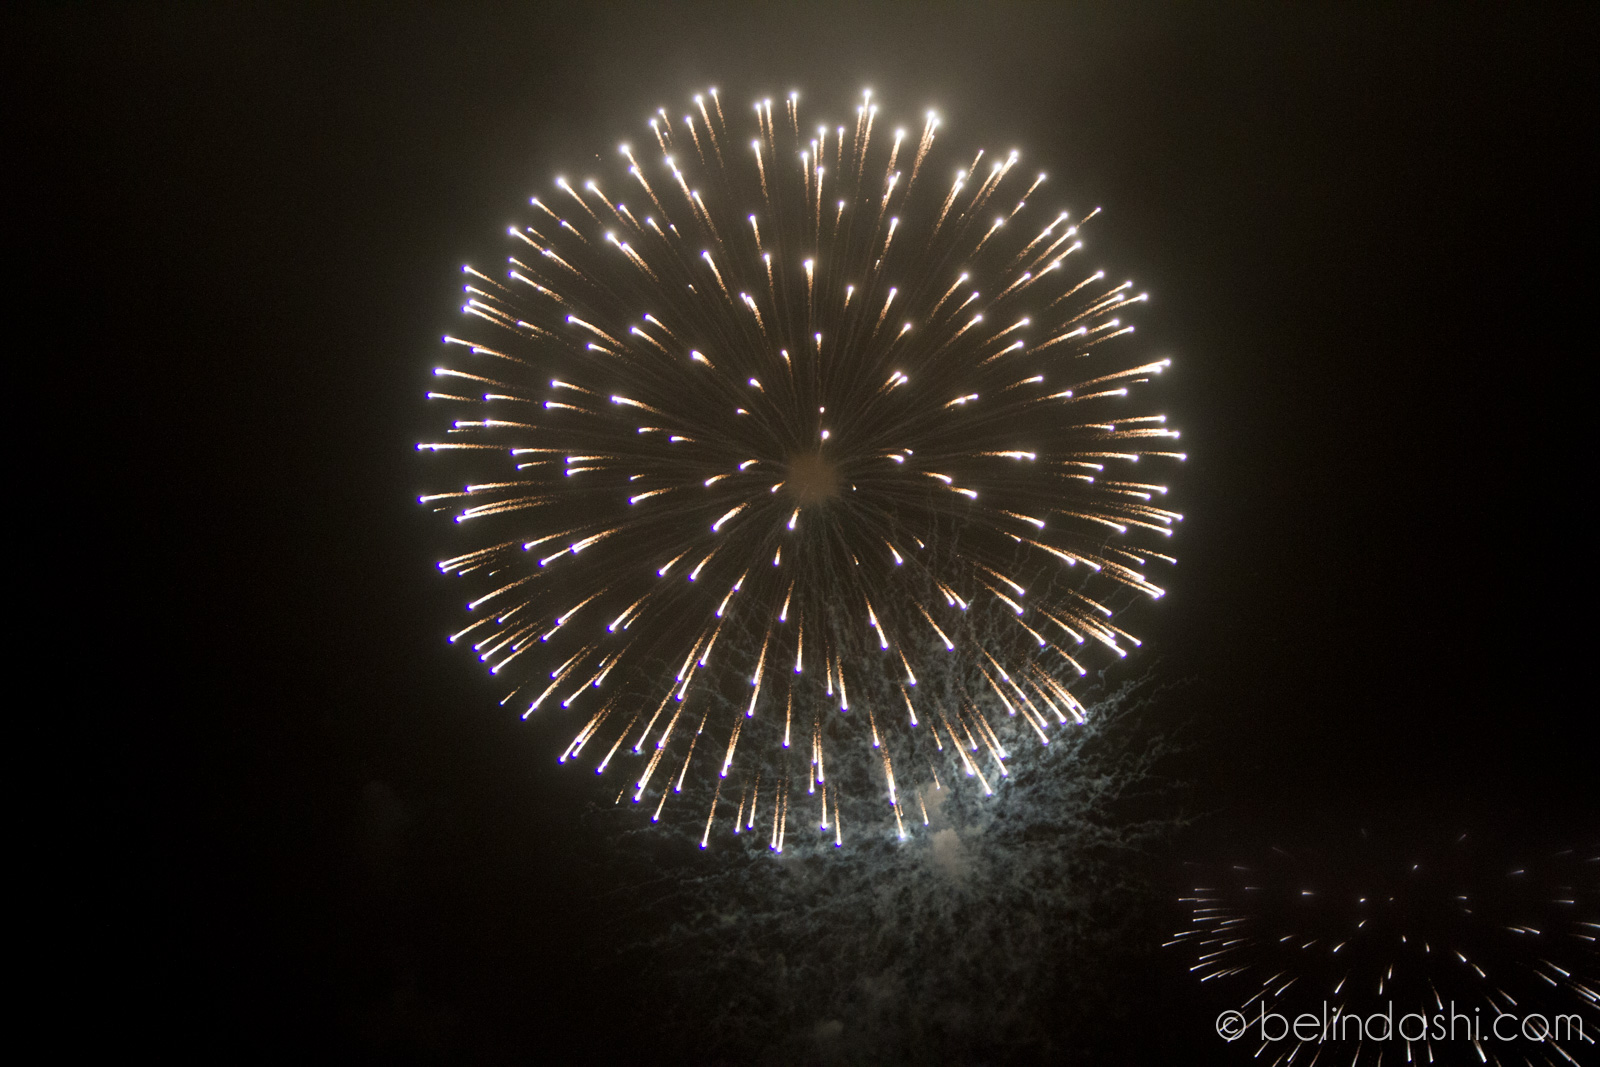 Fireworks without a Tripod, ISO2000, 90mm, f/2.8, 1/250 (photographed a few years ago without a tripod and using a non full-frame Canon 7D)